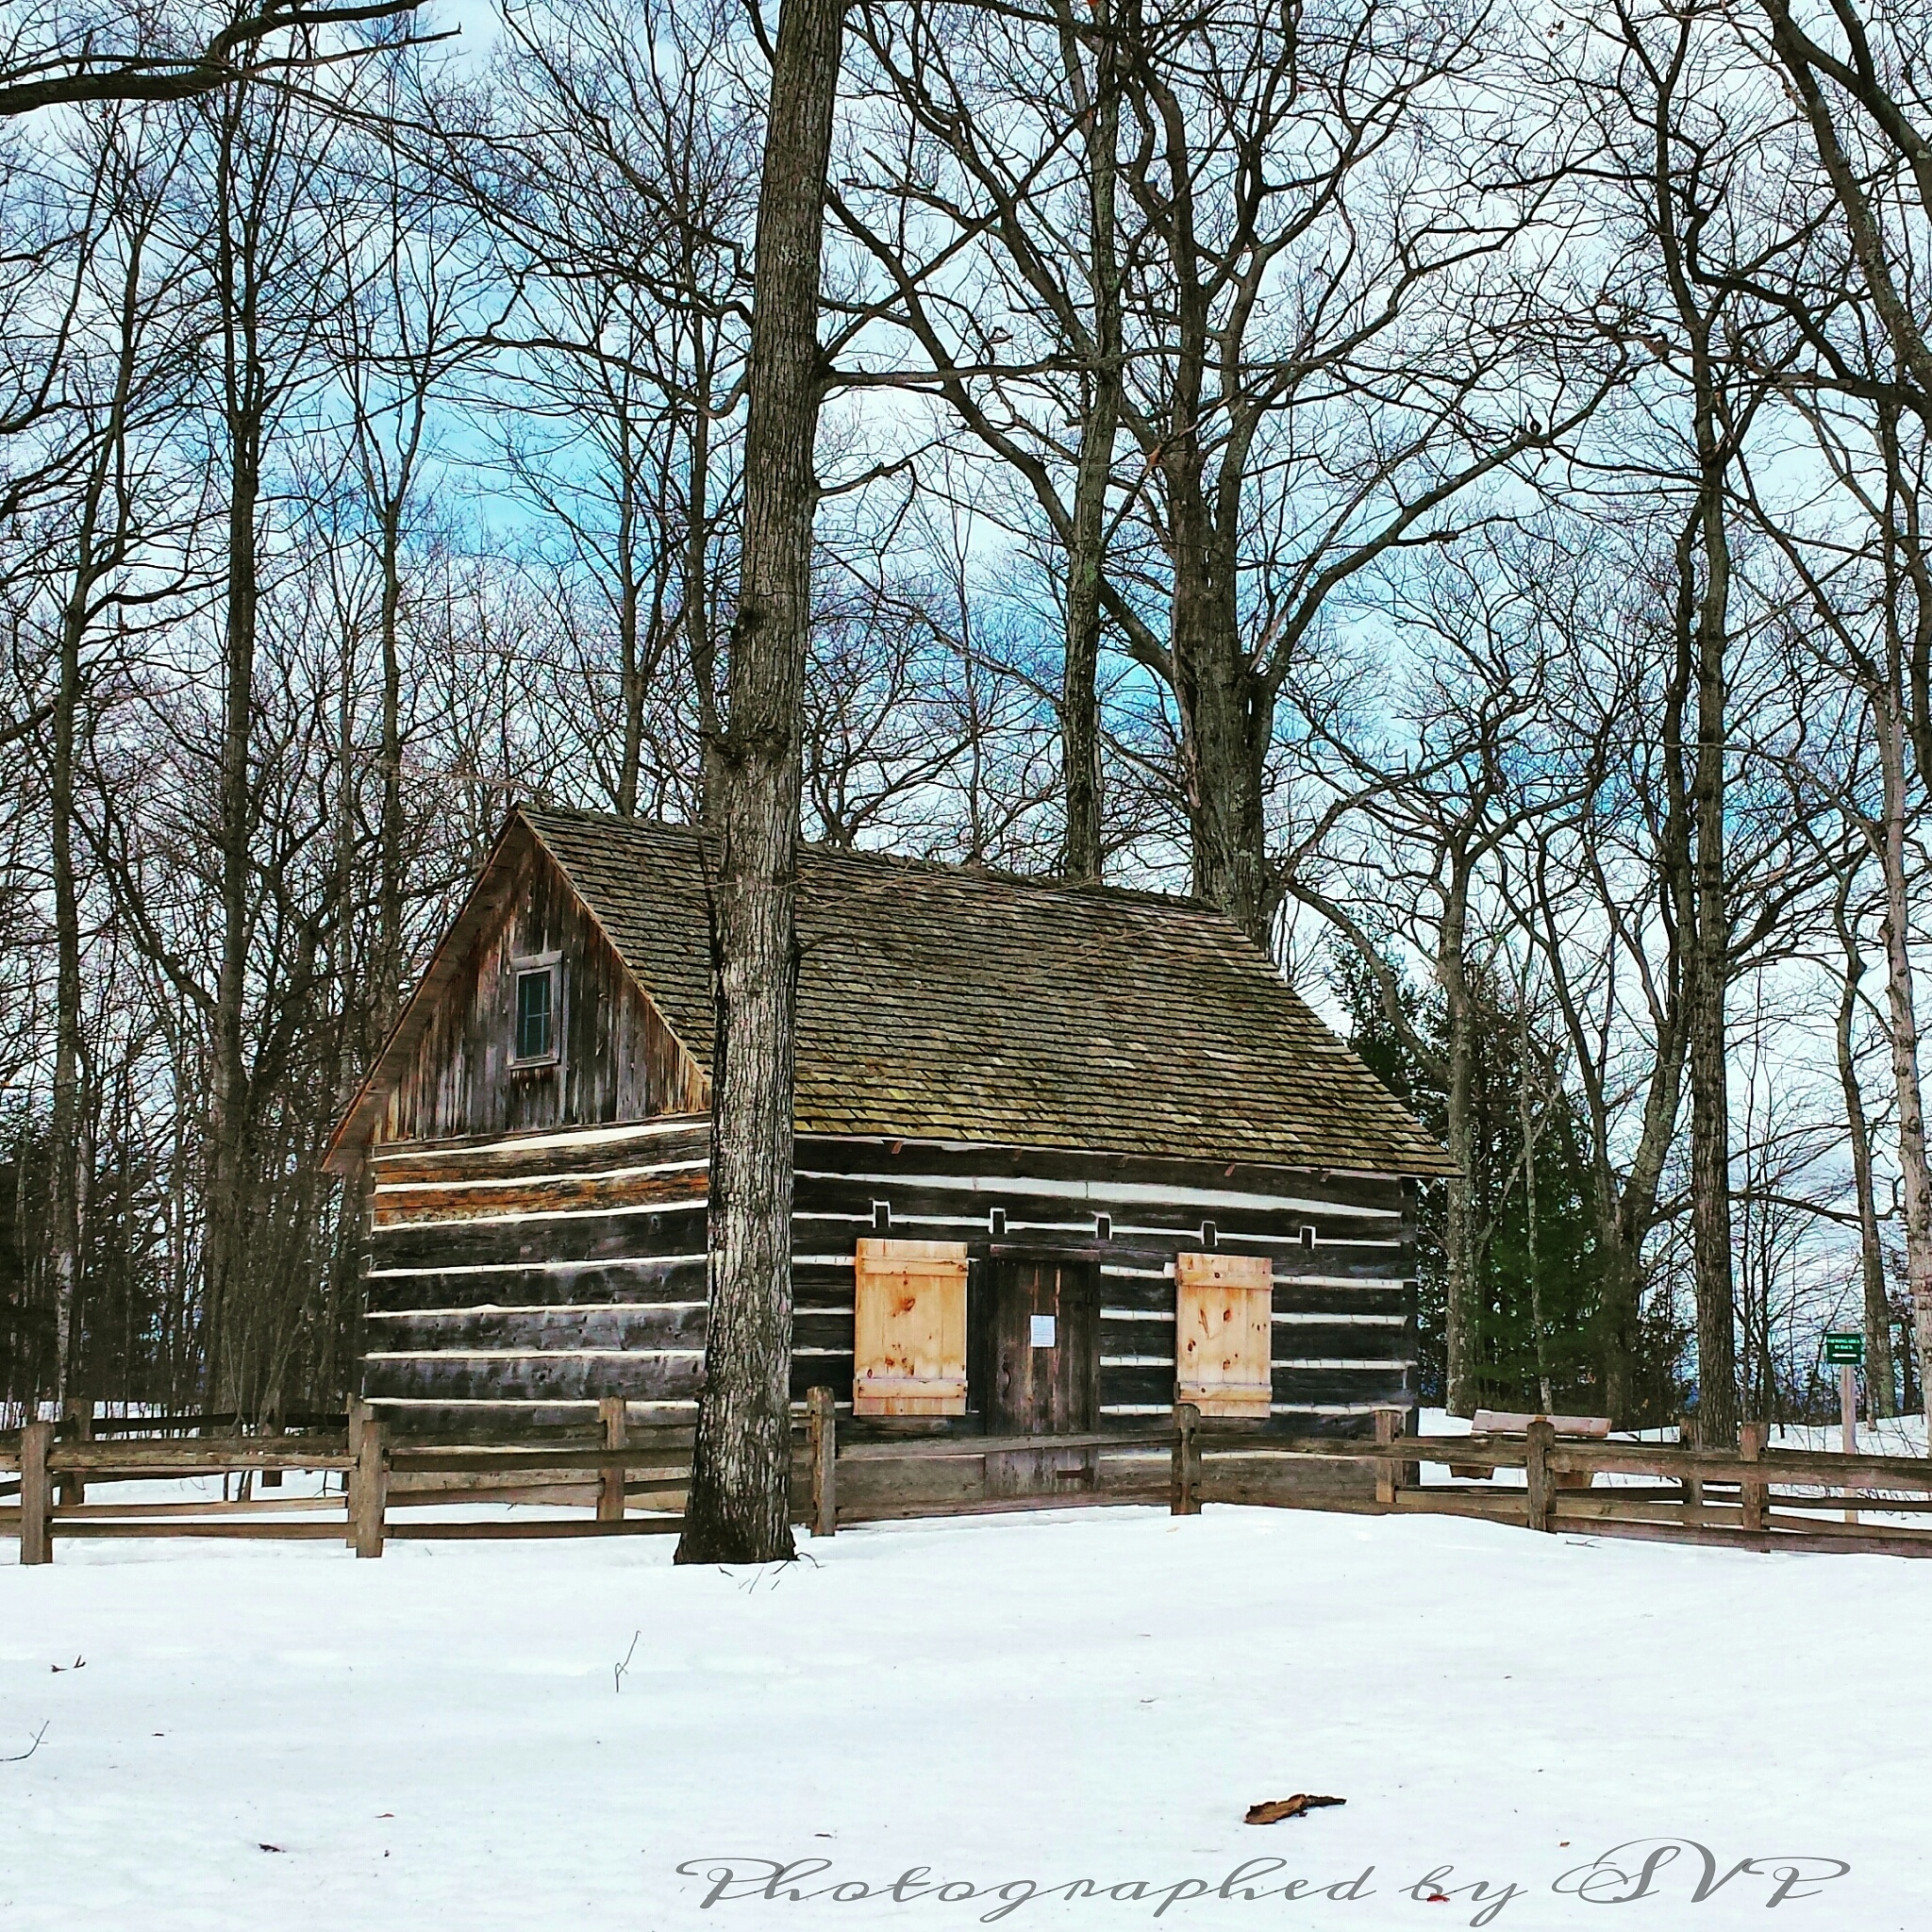 Log Cabin photography by Myartsnphotos